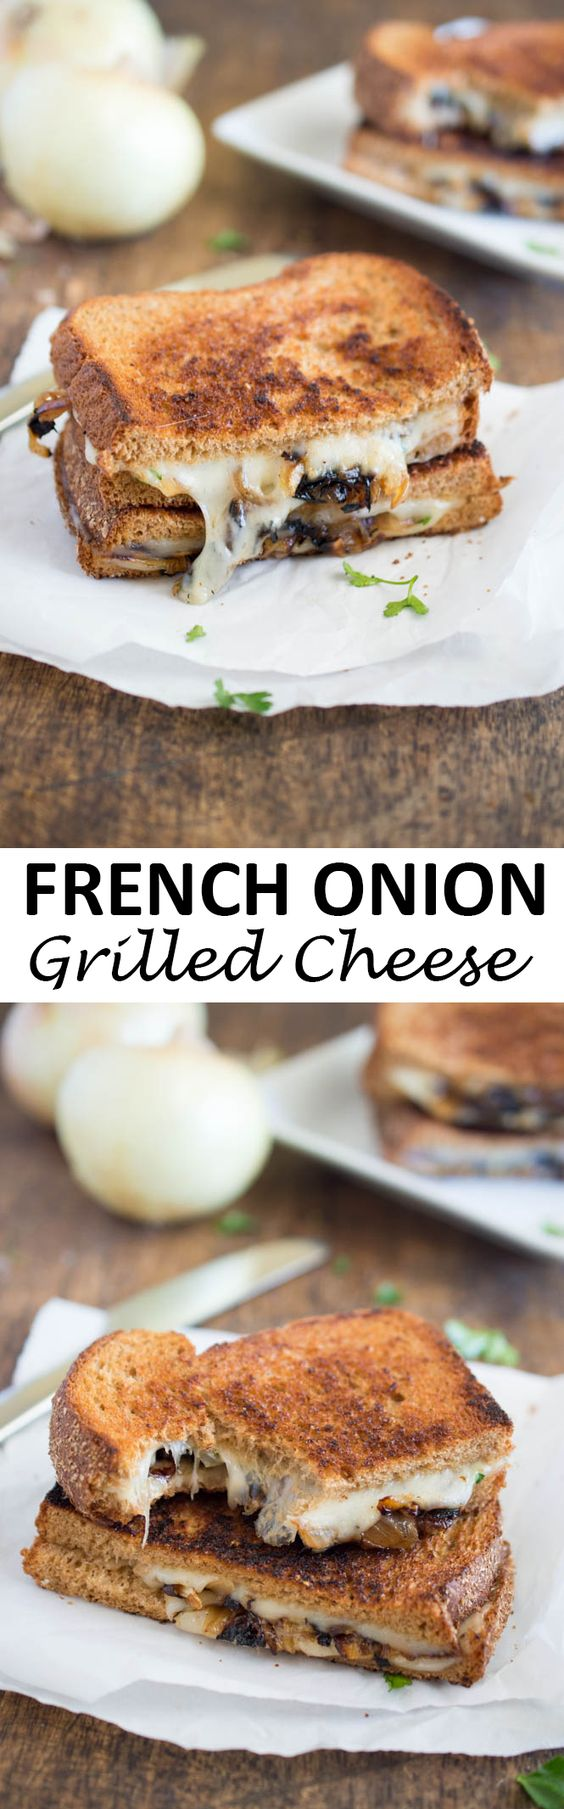 French Onion Grilled Cheese | Recipe | French onion soups ...